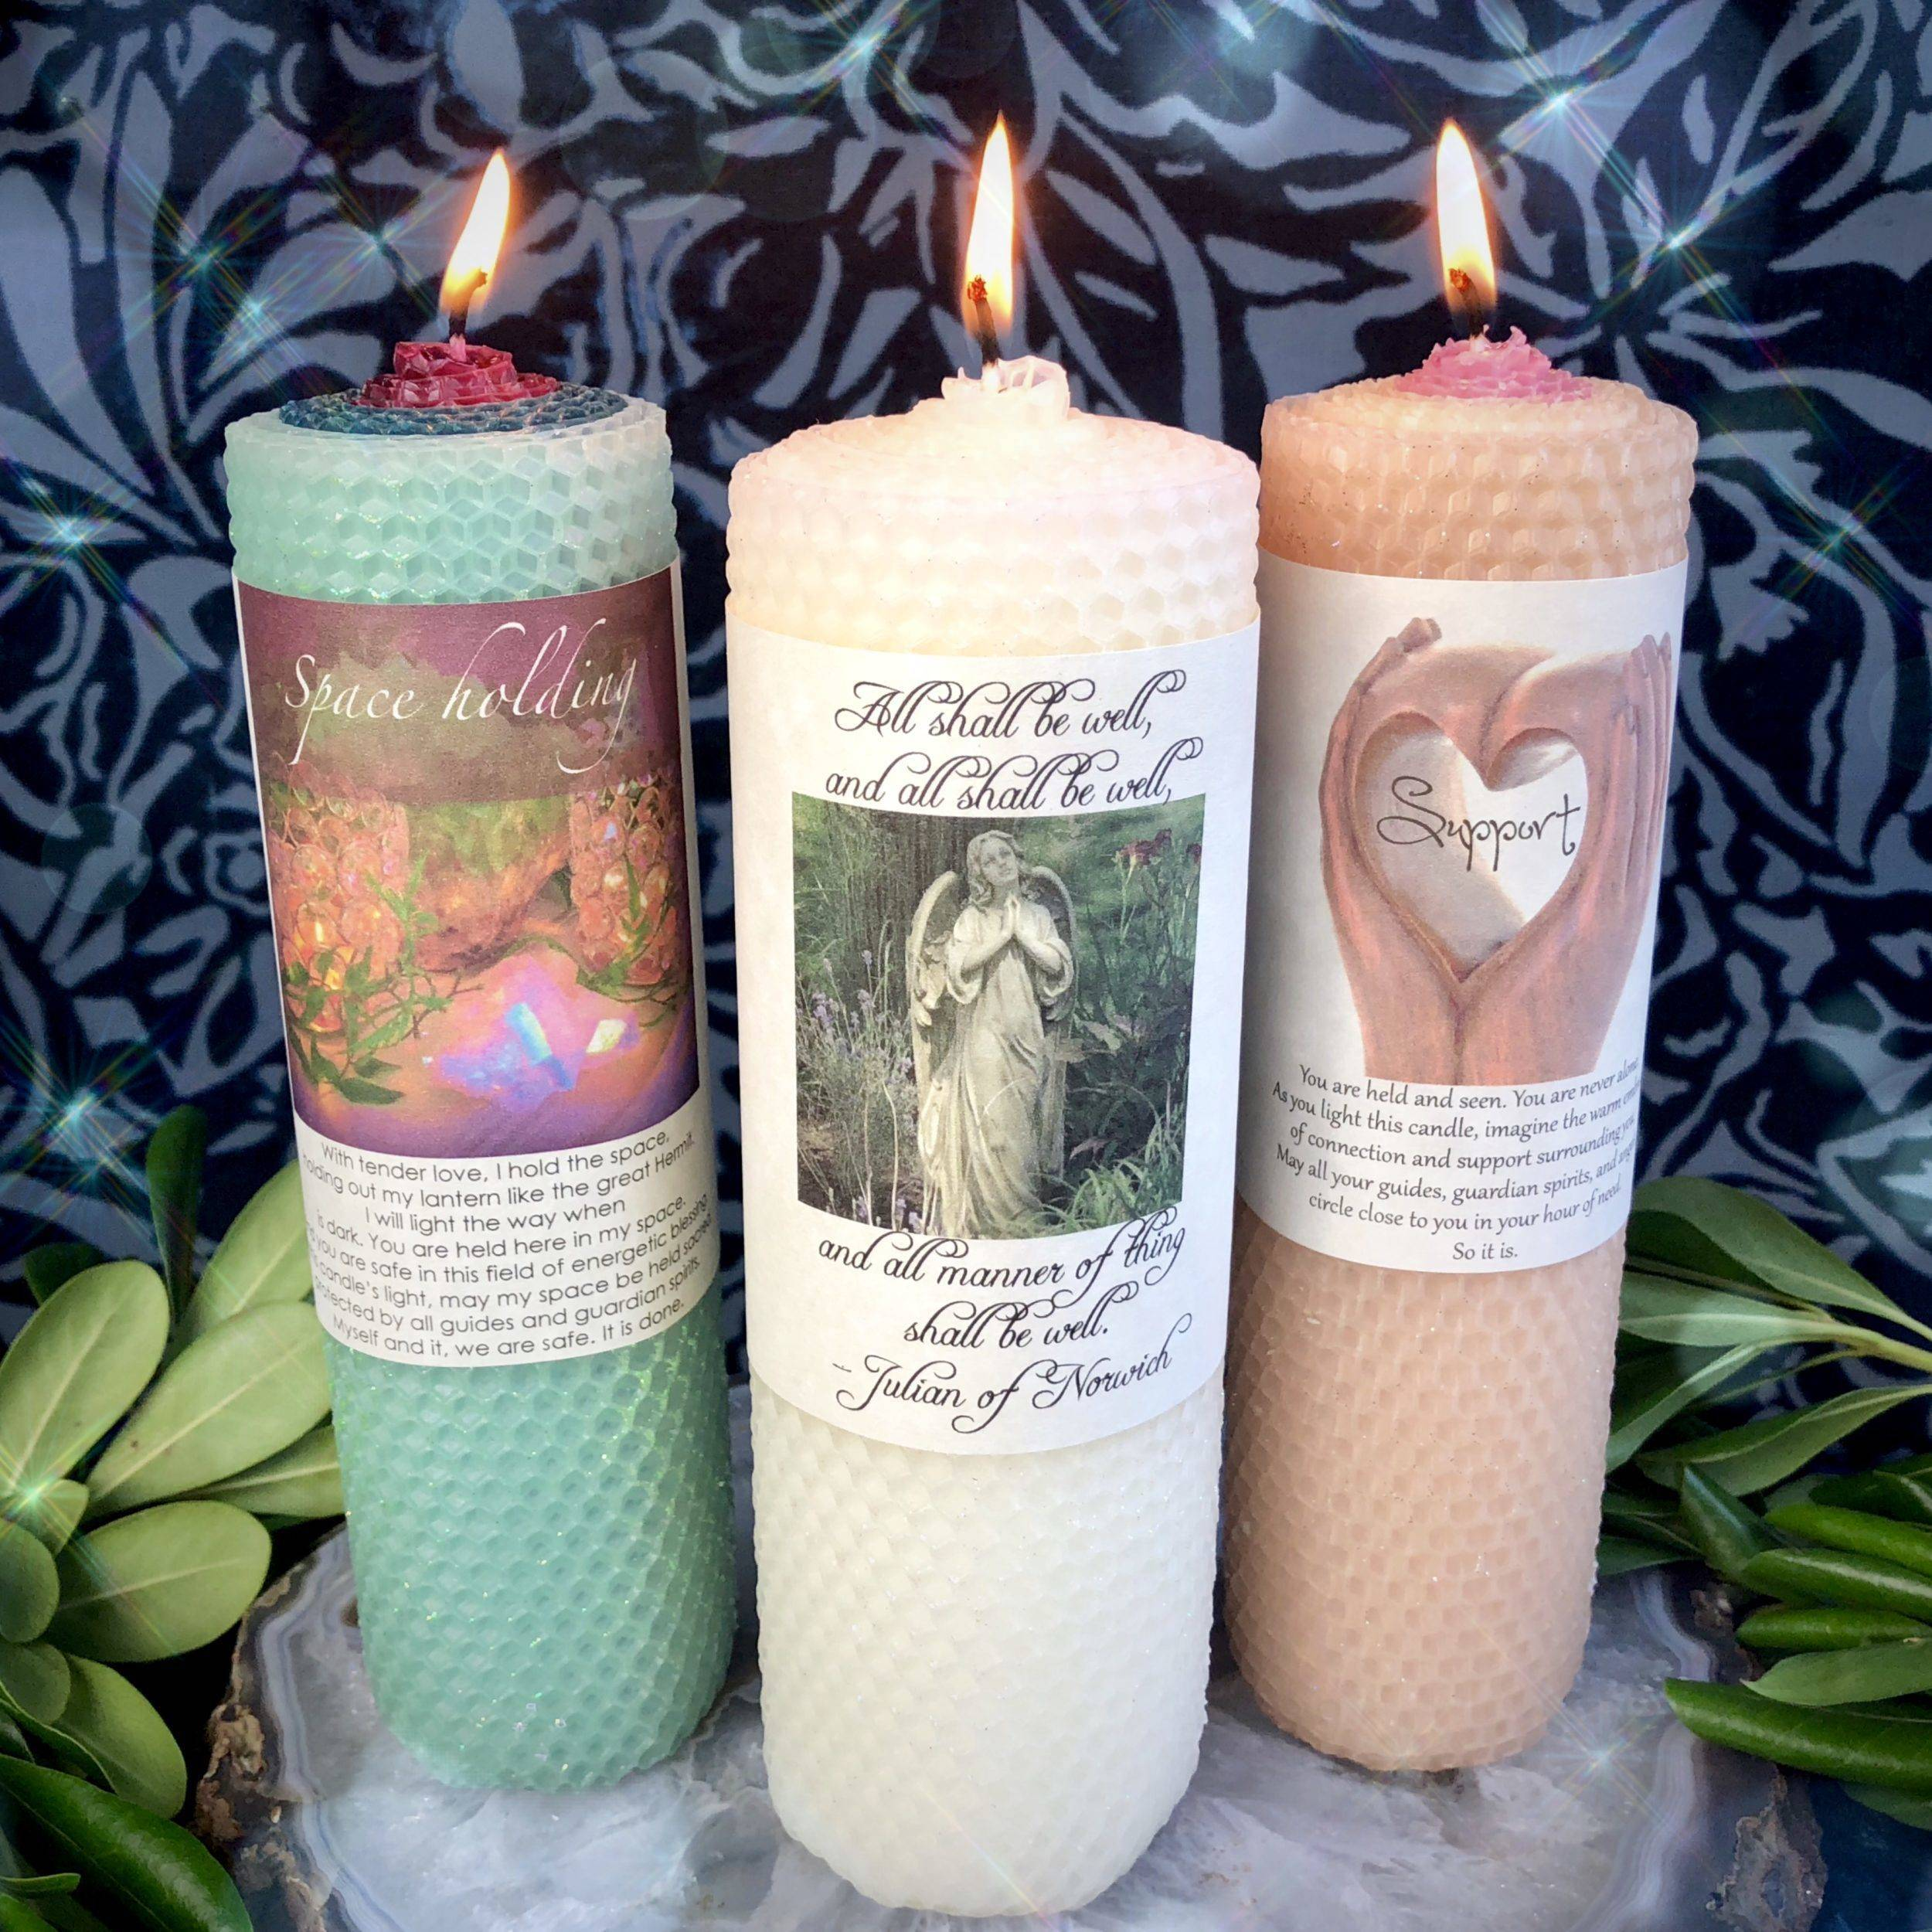 Prayer_Support_Space_Holding_Candle_Trio_1of4_8_15